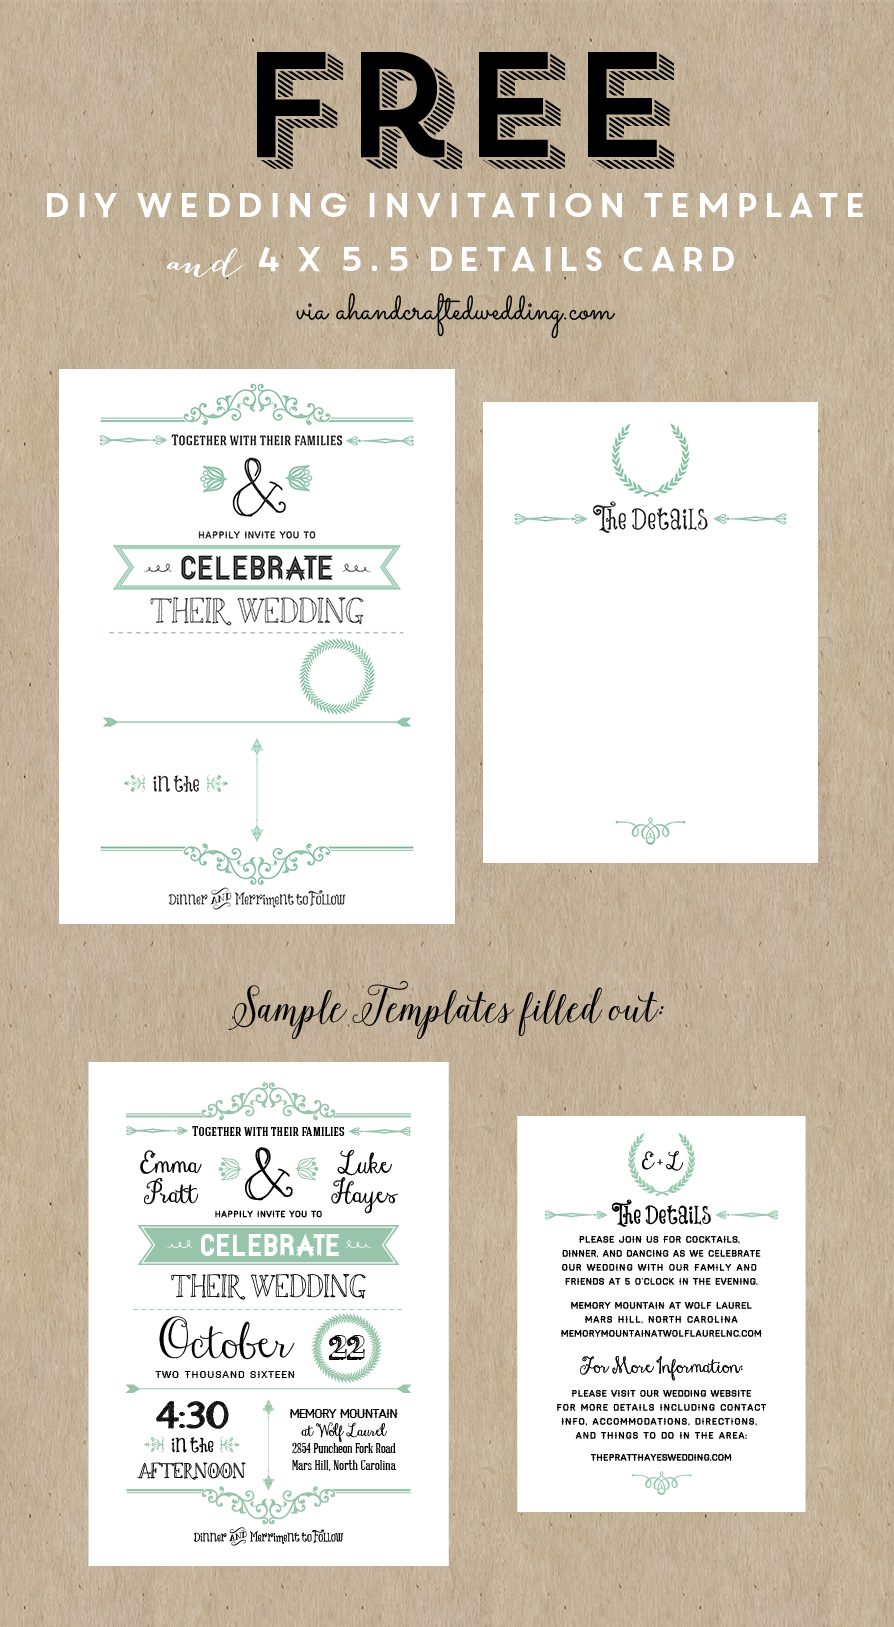 FREE Printable Wedding Invitation Template | wedding | Pinterest ...